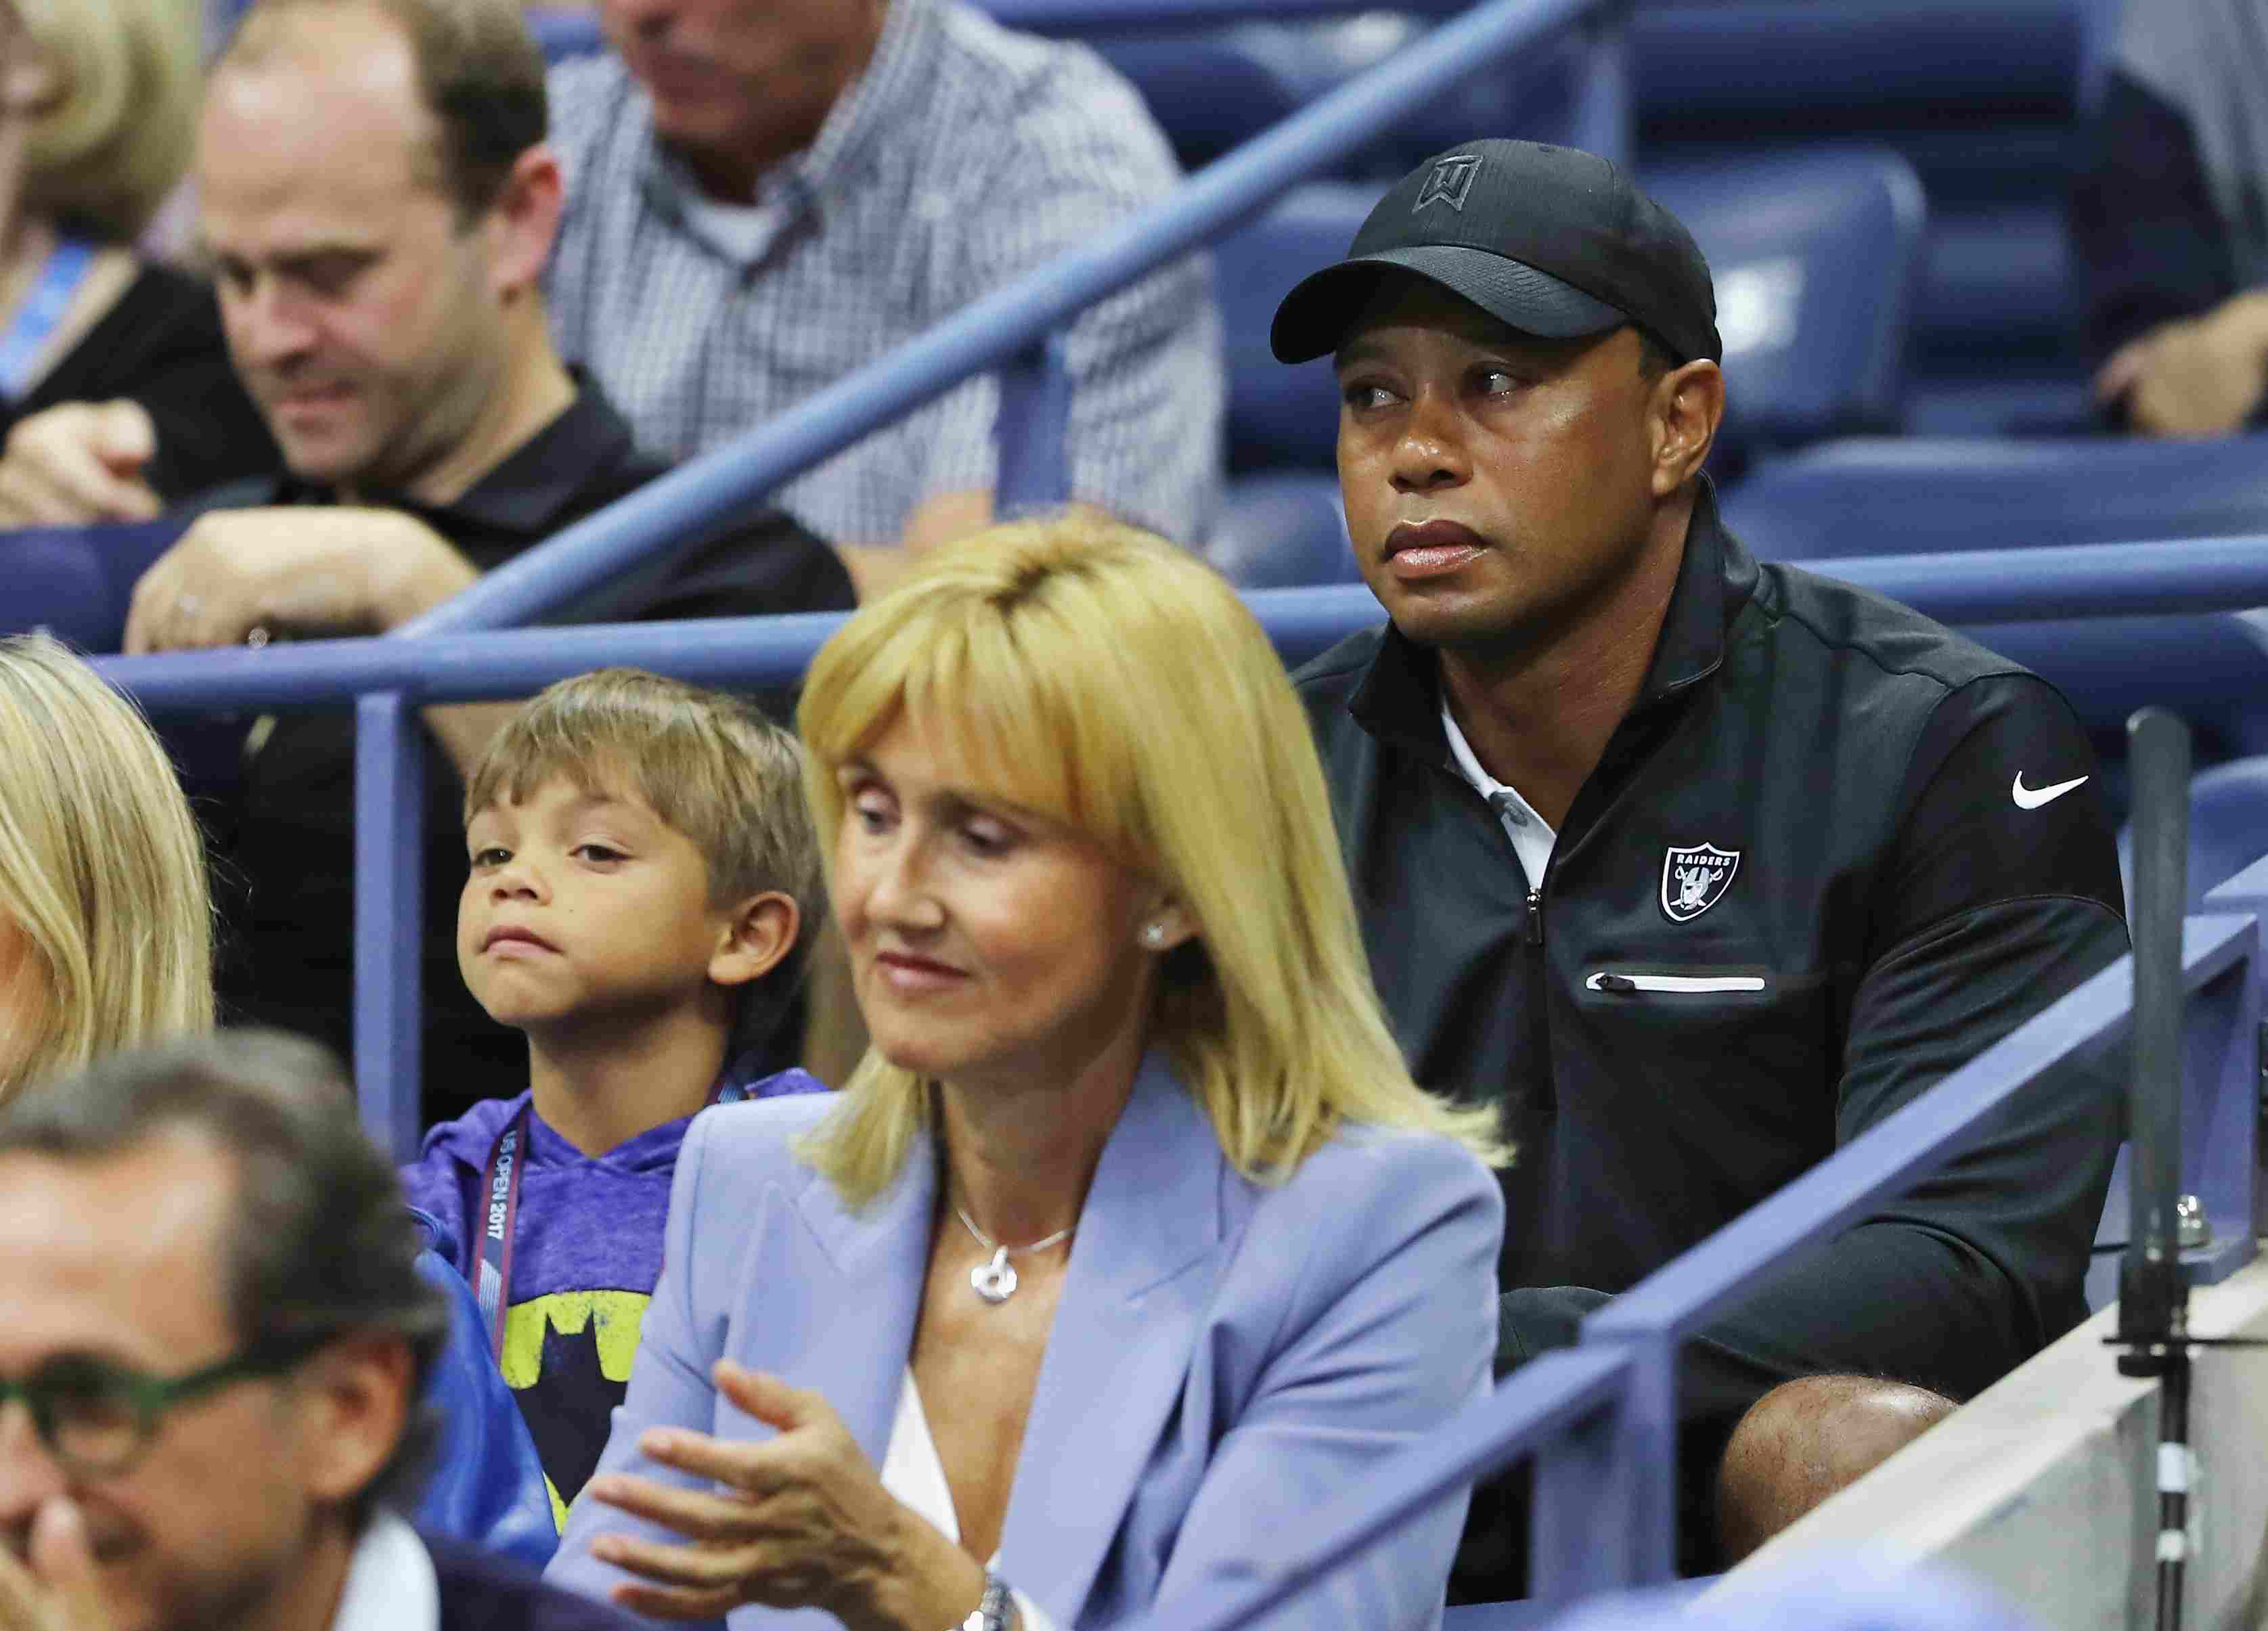 Professional golfer Tiger Woods (R) and his son Charlie Axel Woods (L) attend Day Twelve of the 2017 US Open at the USTA Billie Jean King National Tennis Center